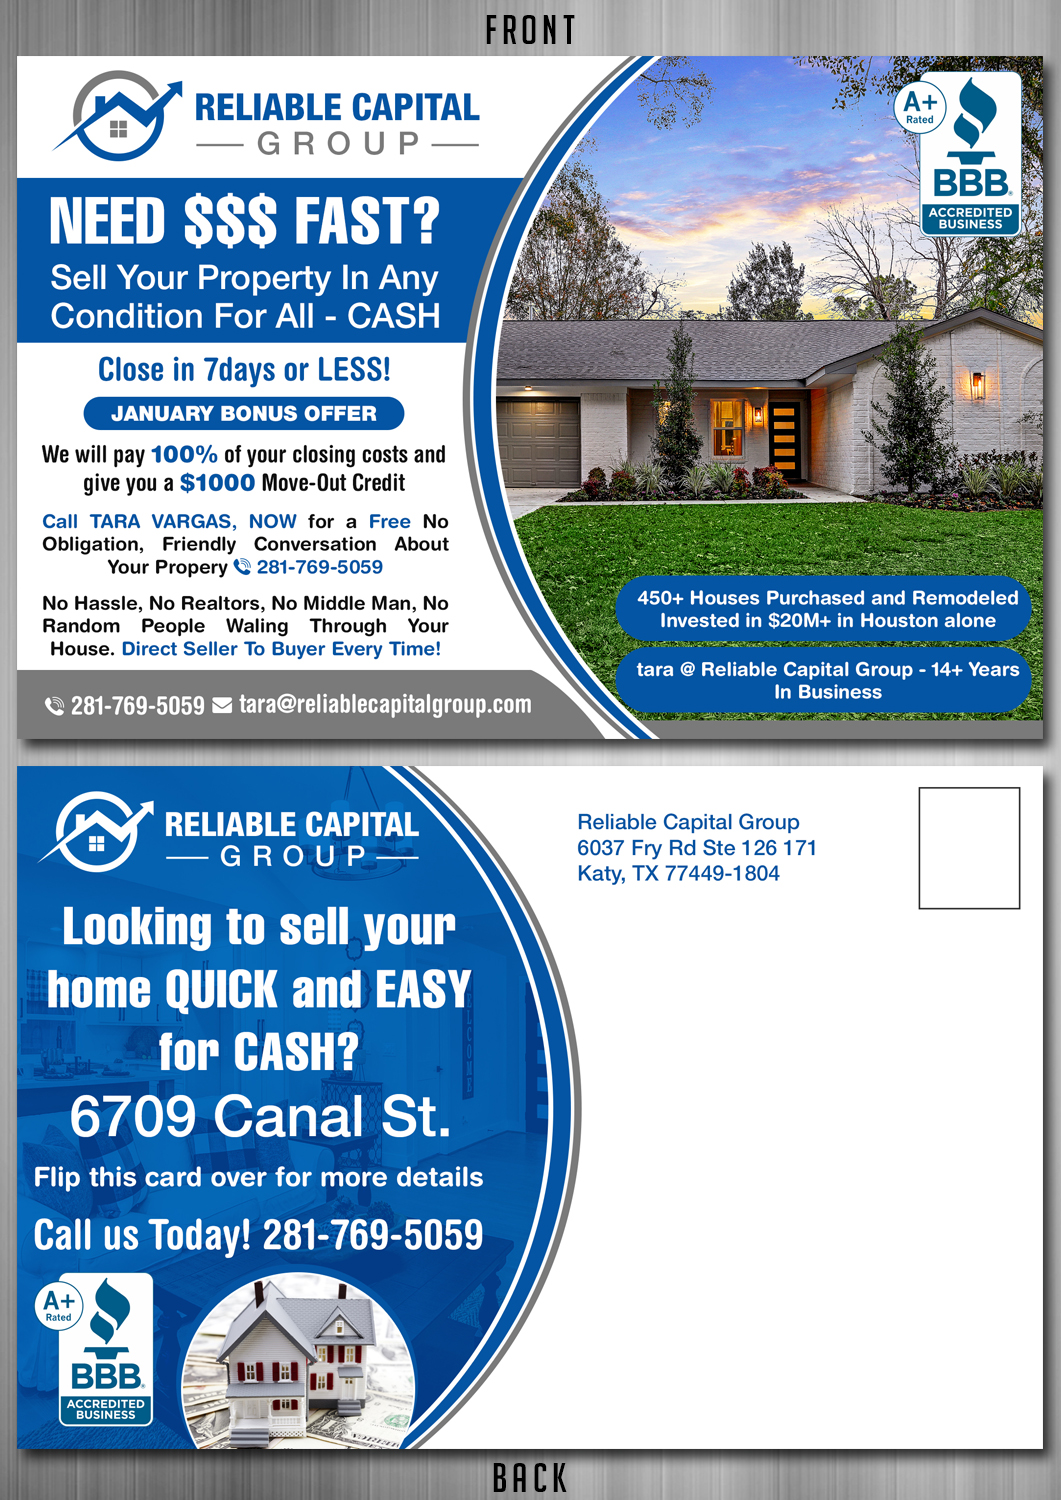 Serious Upmarket Real Estate Postcard Design For A Company